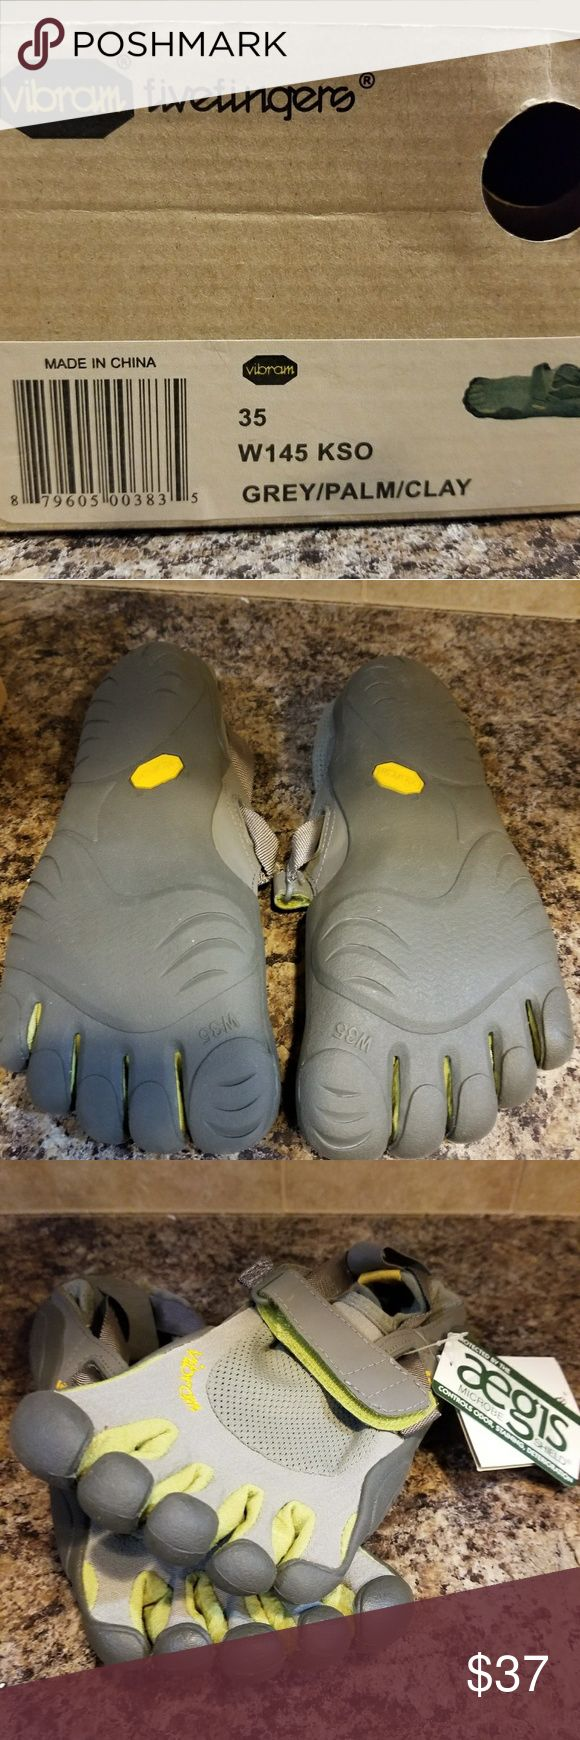 Nib vibram five fingers toed athletic shoes 35 5.5 New in box Vibram five fingers athletic shoes. Size 35 or 5.5. Flawless and unworn. Vibram Shoes Athletic Shoes